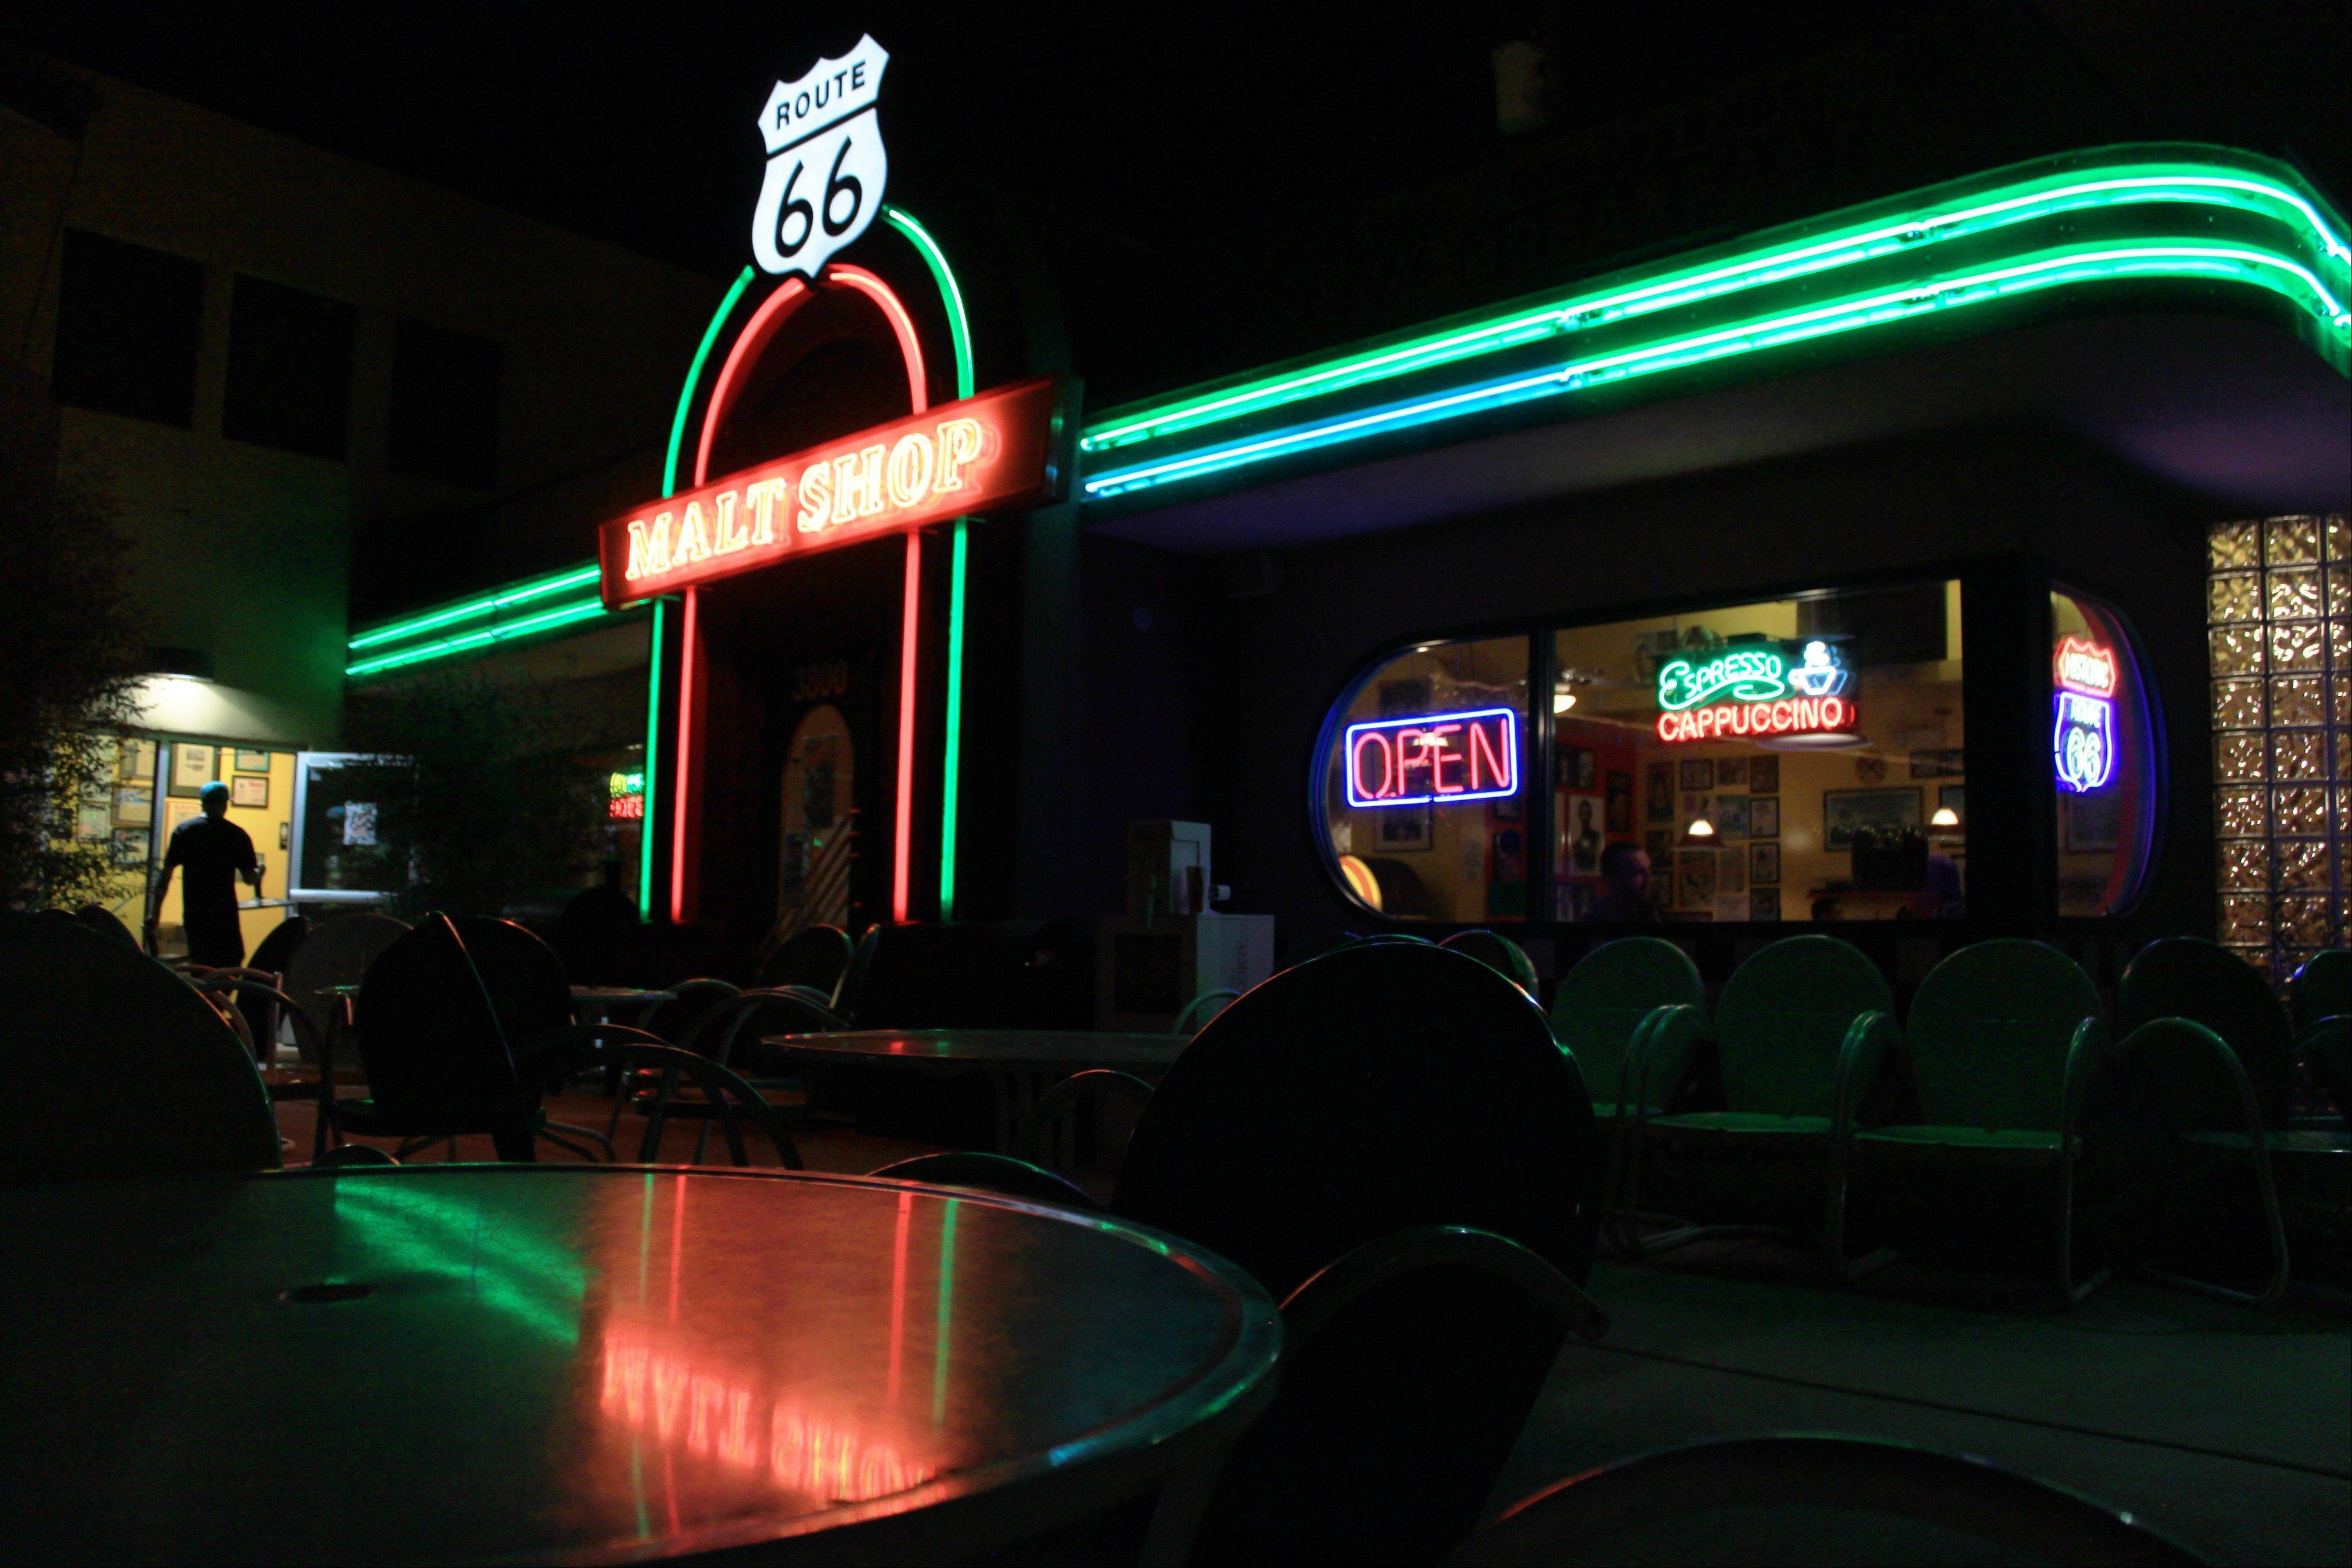 A self-guided tour along Route 66 offers boutiques, restaurants like the Route 66 Malt Shop and a variety of neon signs, many of them vintage.